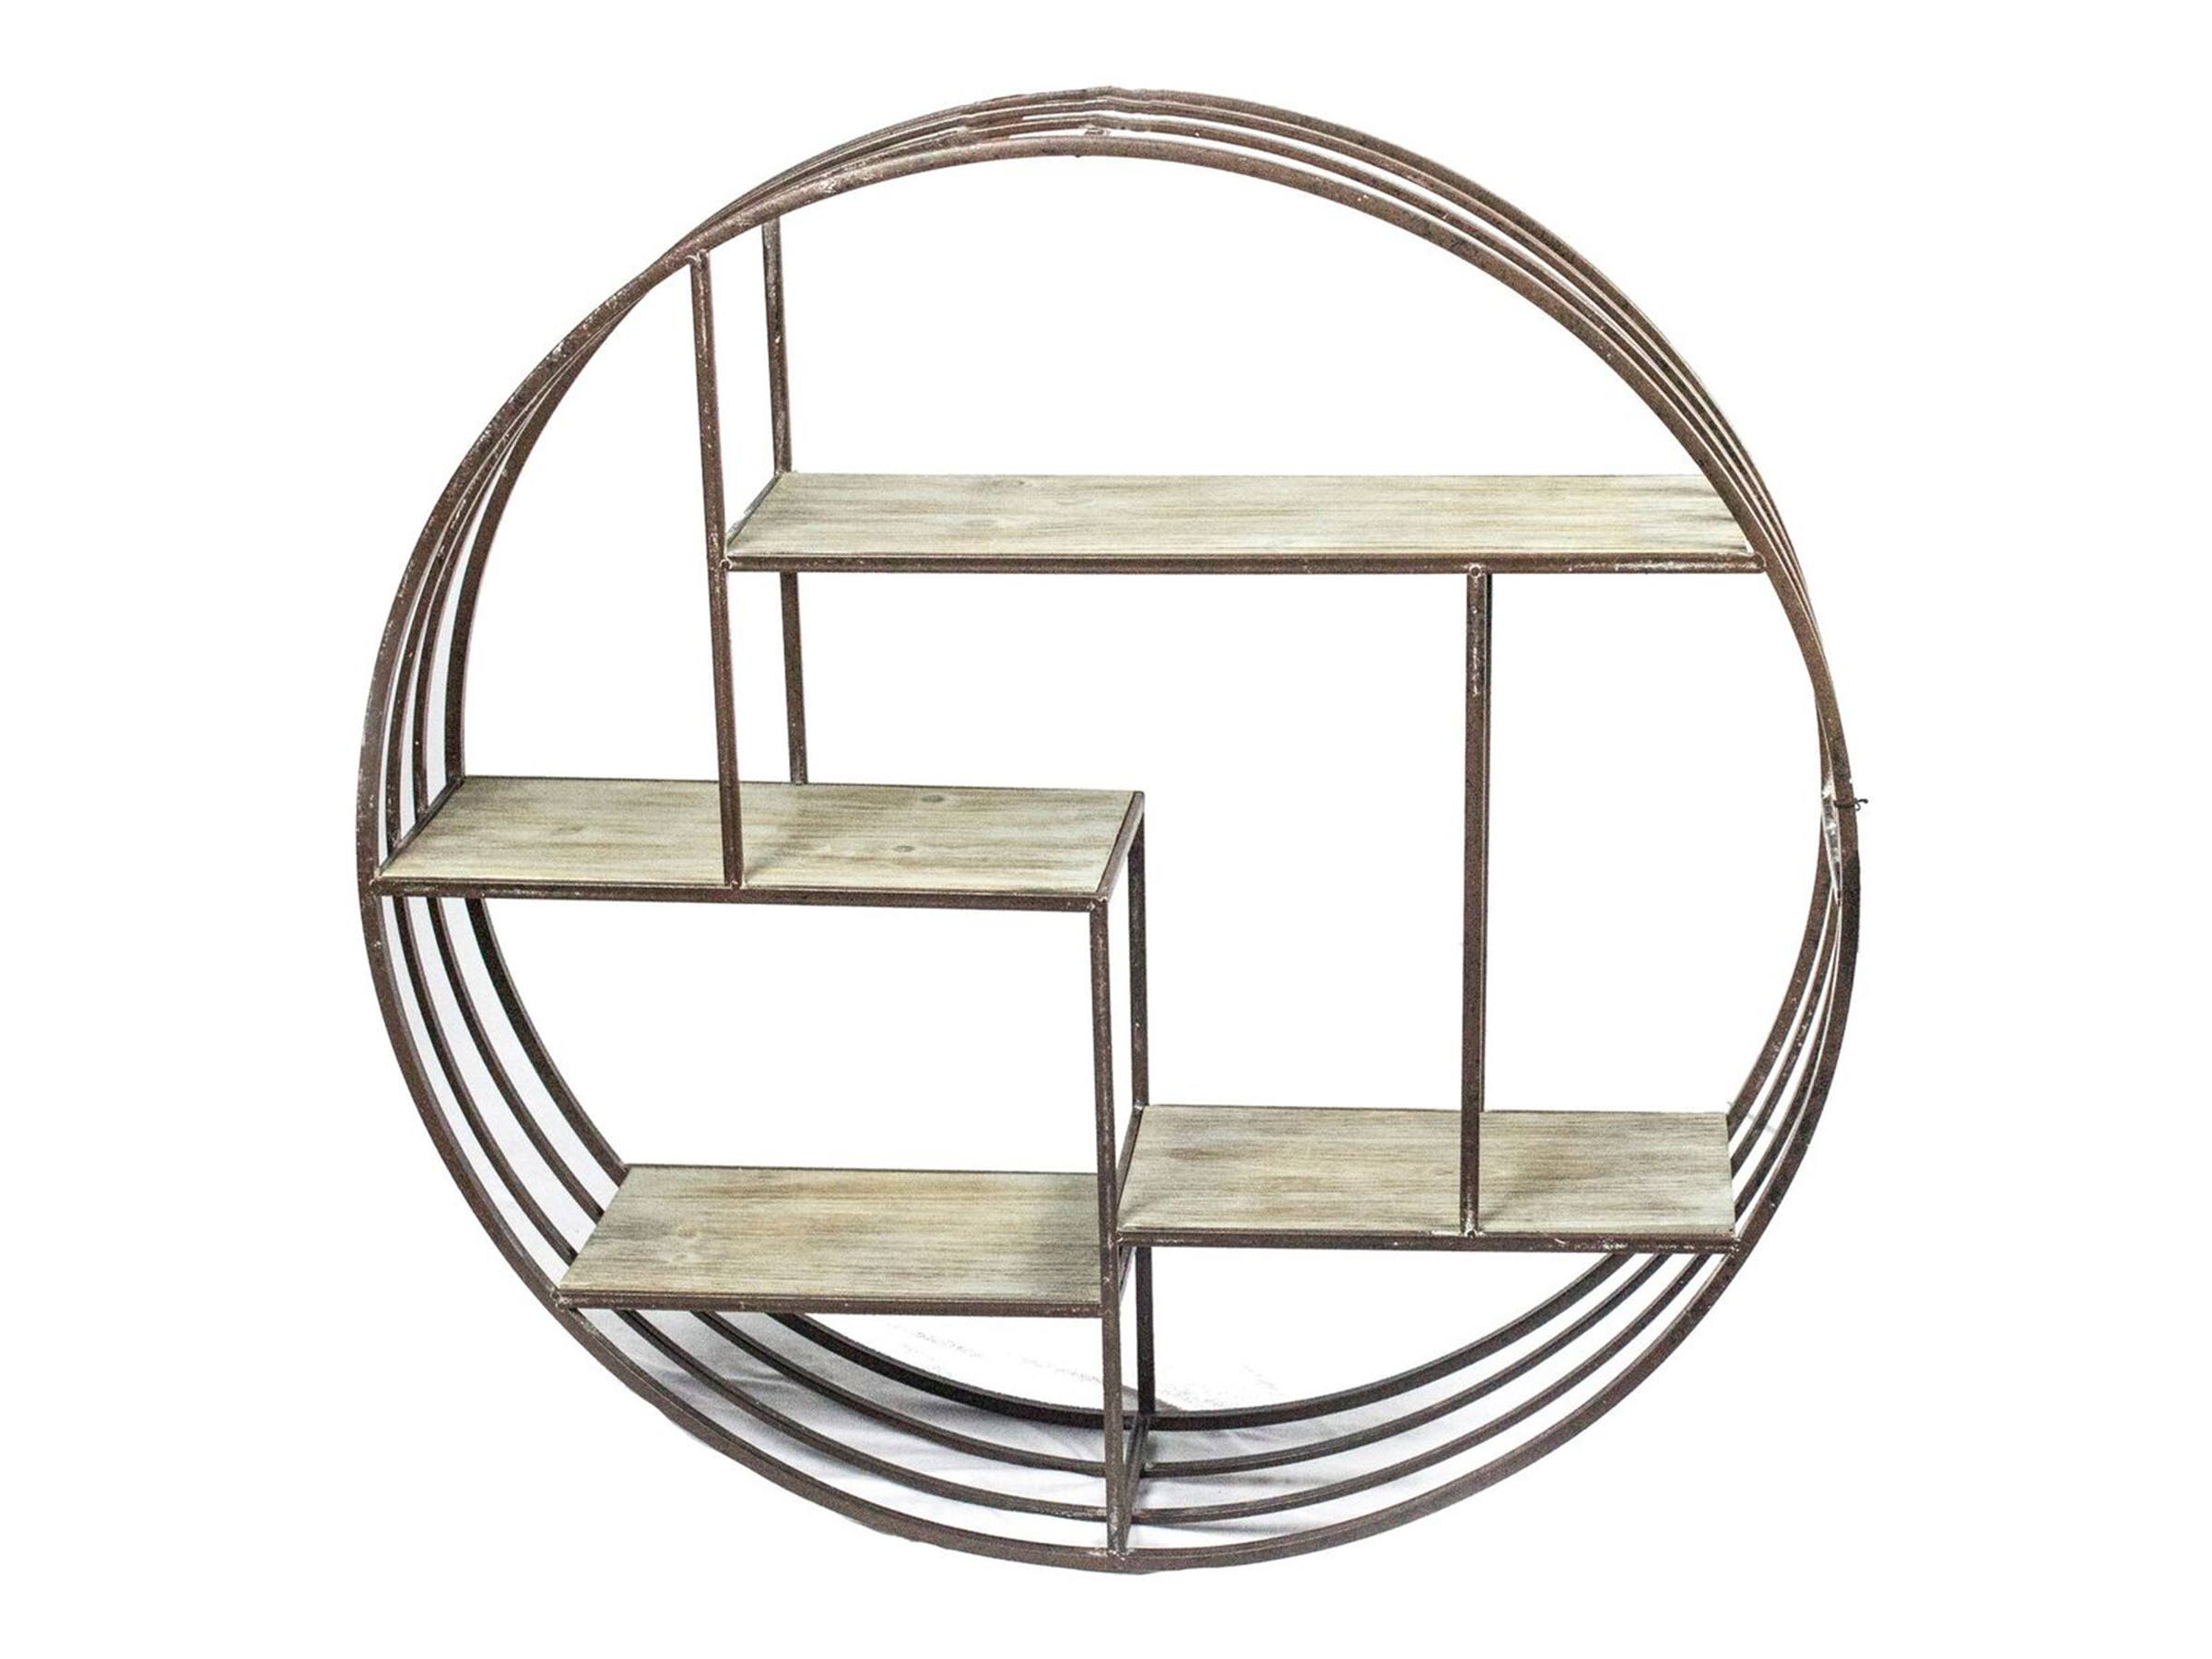 "Round Metal and Wood Wall Shelf 32""H"